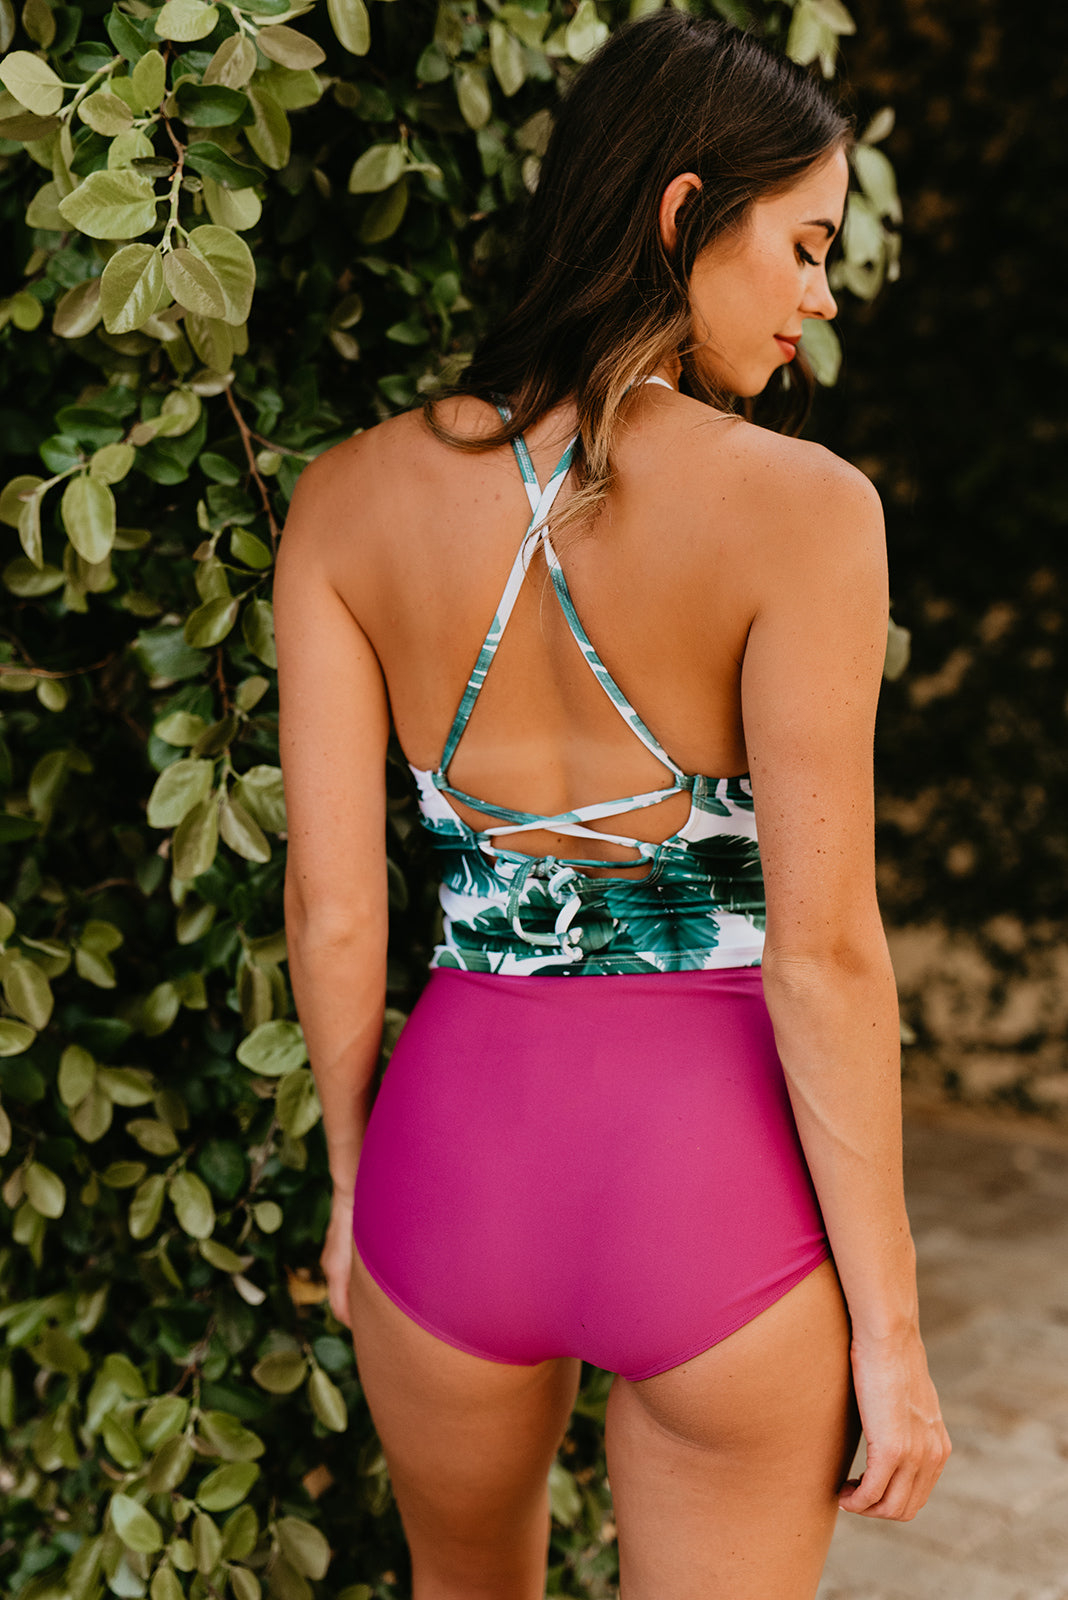 THE JUNGLE BERRY HIGH WAIST SWIM BOTTOM BY PINK DESERT